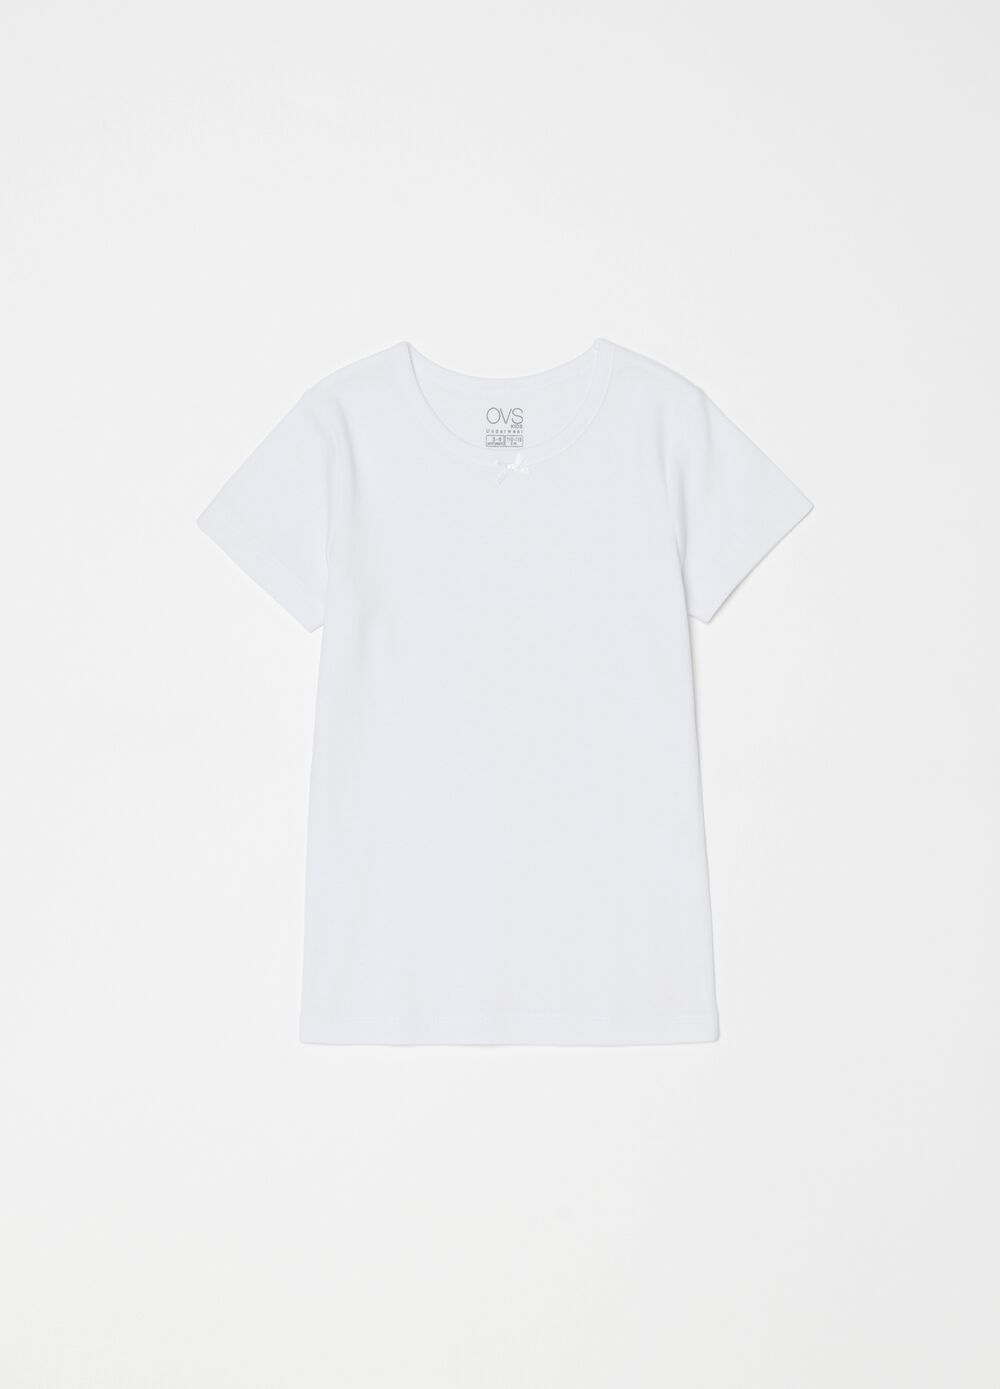 Stretch undershirt in warm organic cotton